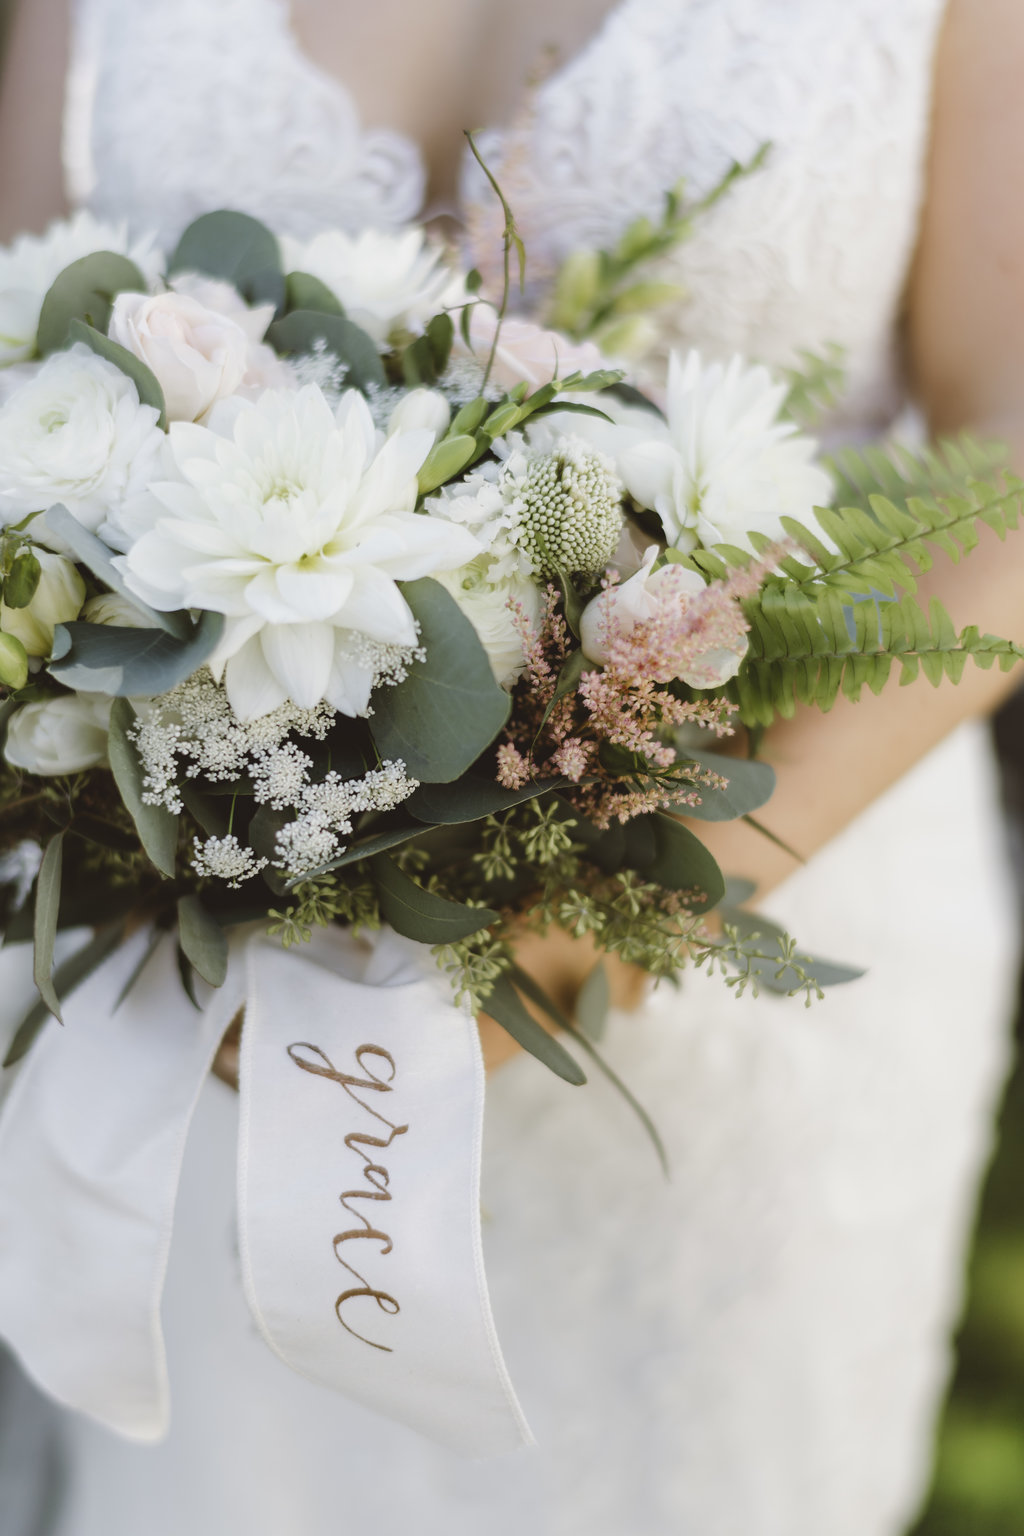 Coppola Creative Wedding Design _ Alicia King Photo4.jpg